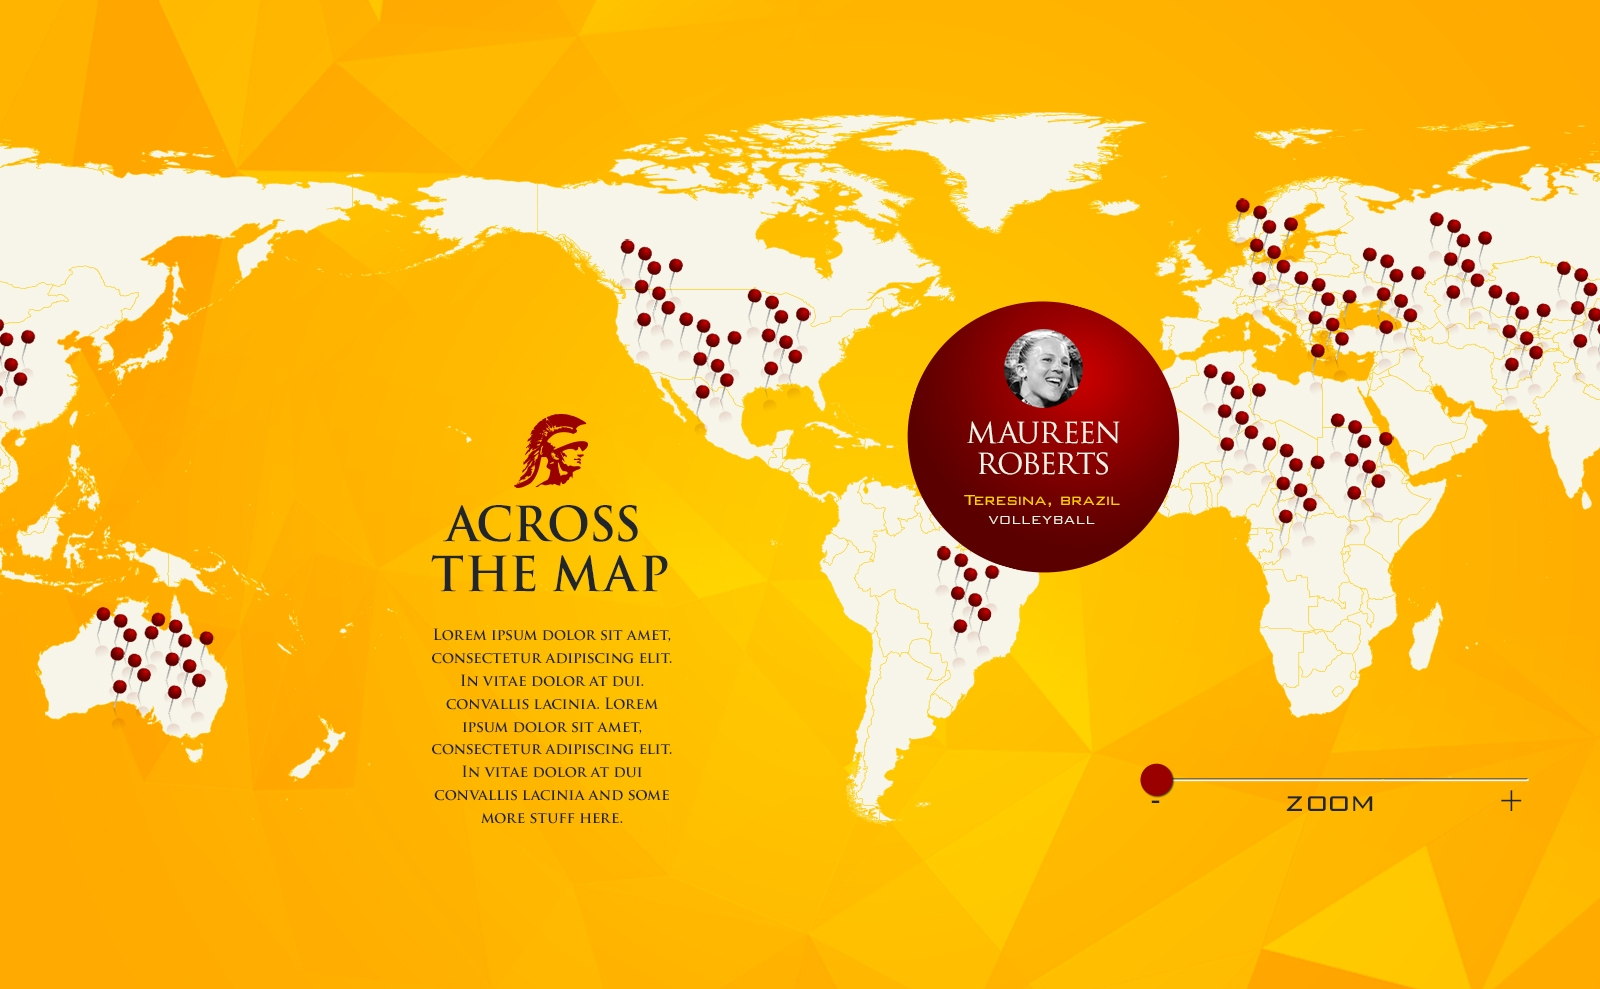 USC Interactive Screens across the map